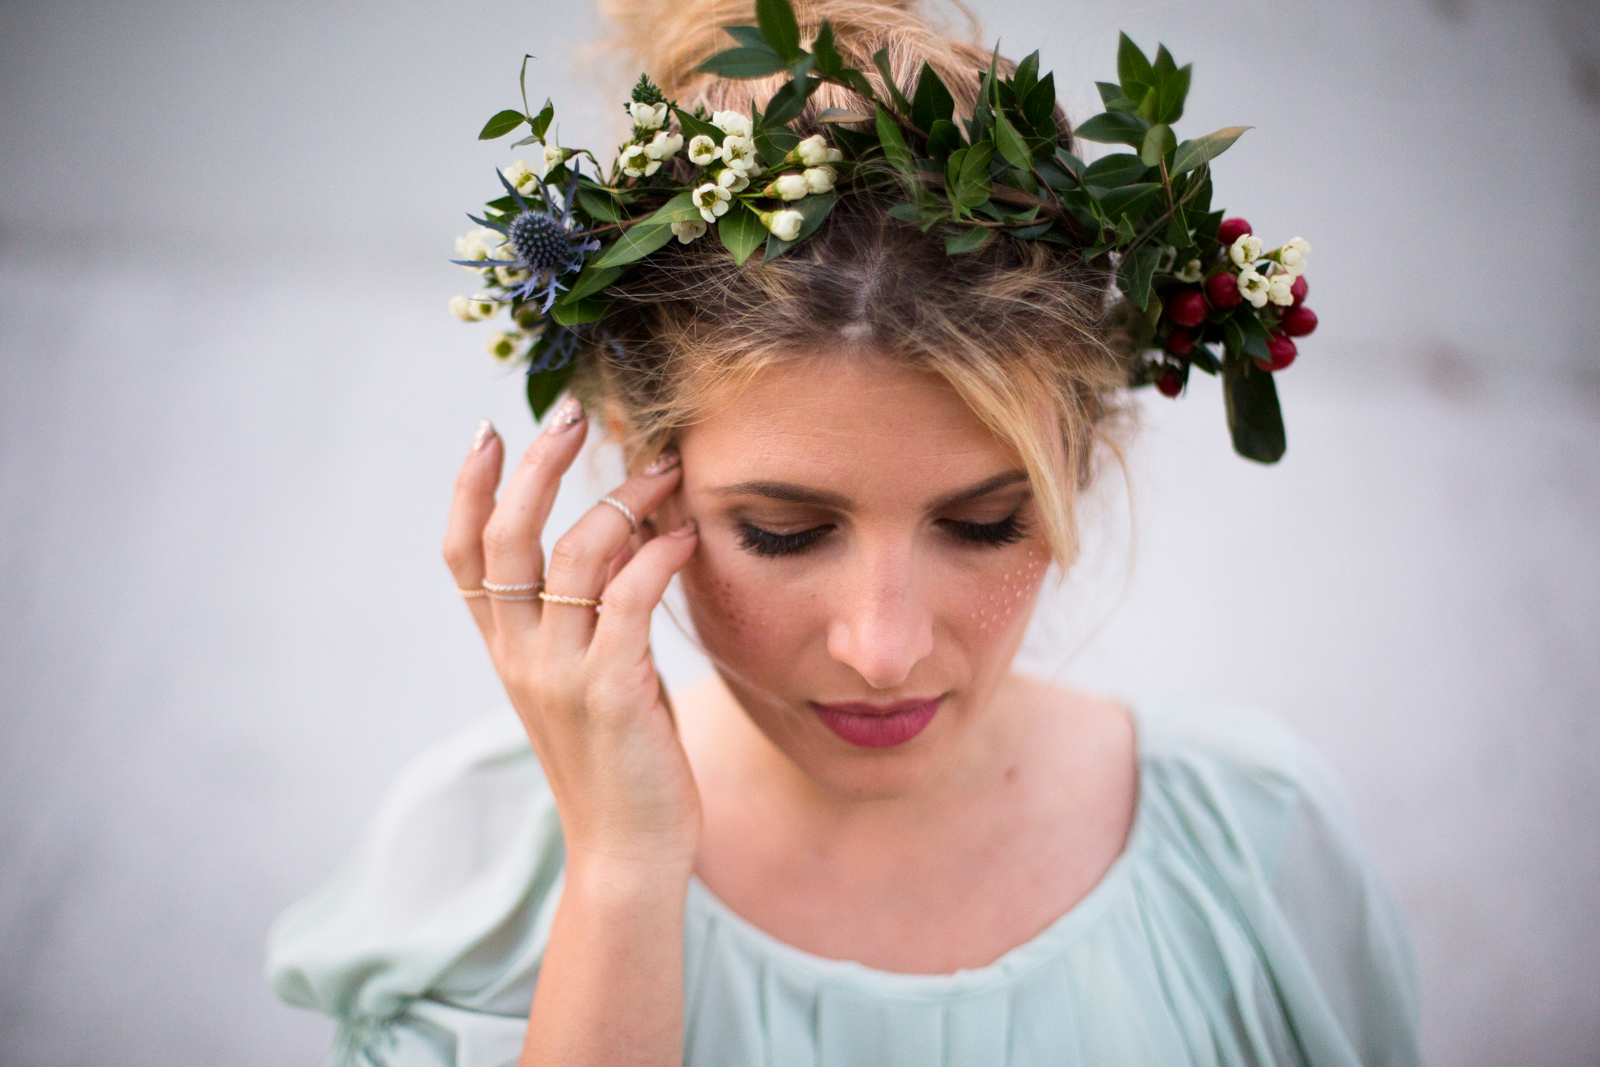 mr. kate - diy winter flower crown